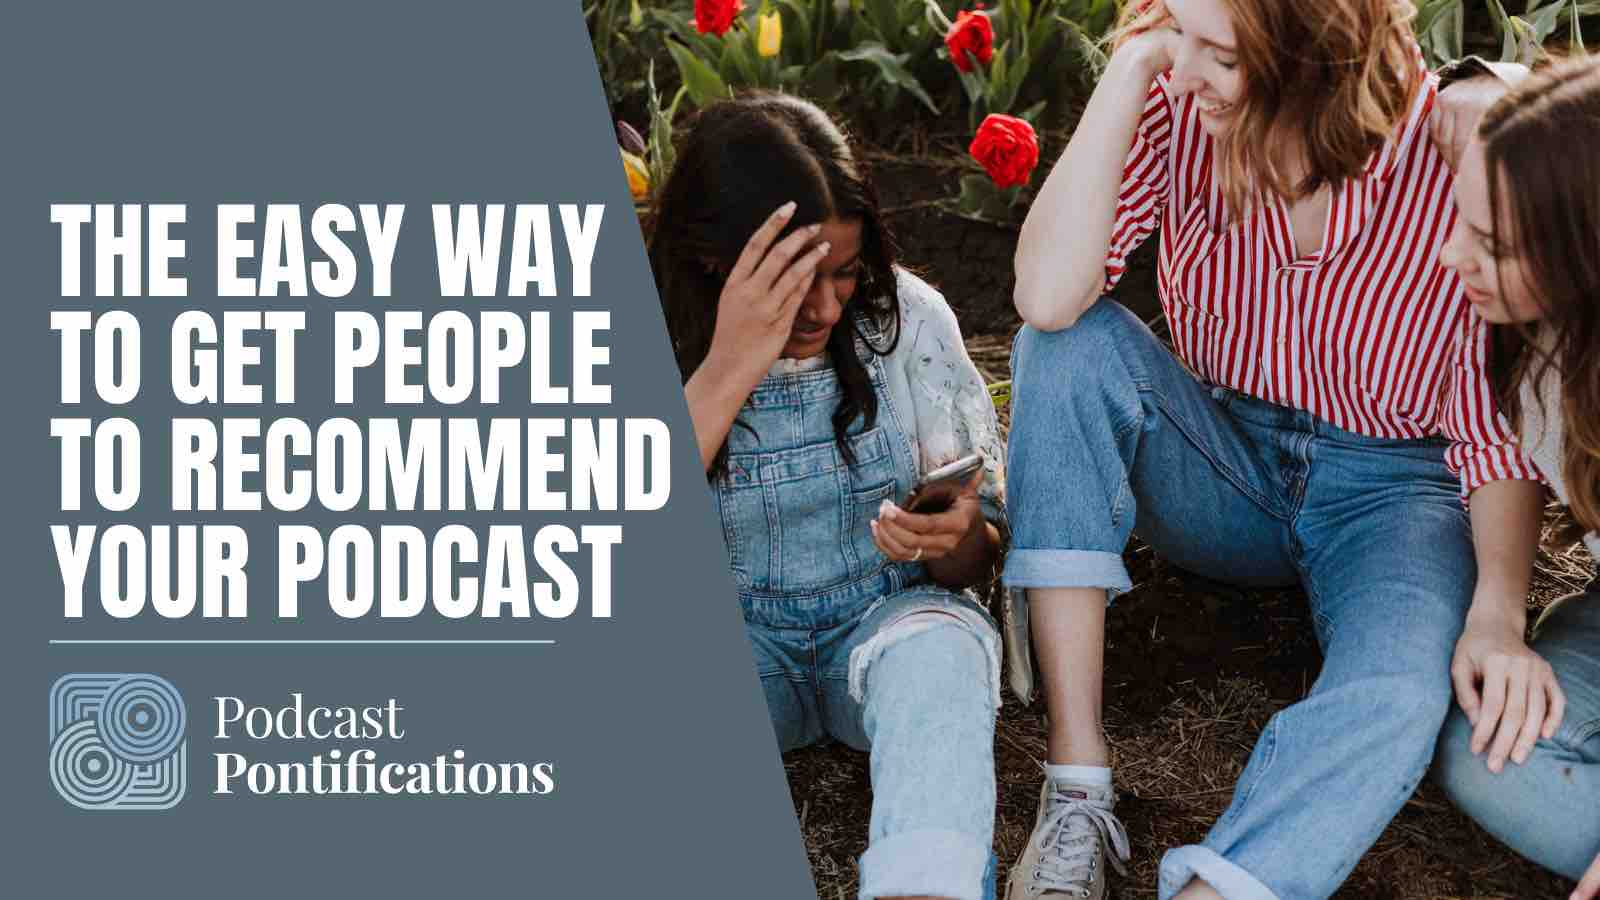 The Easy Way To Get People To Recommend Your Podcast